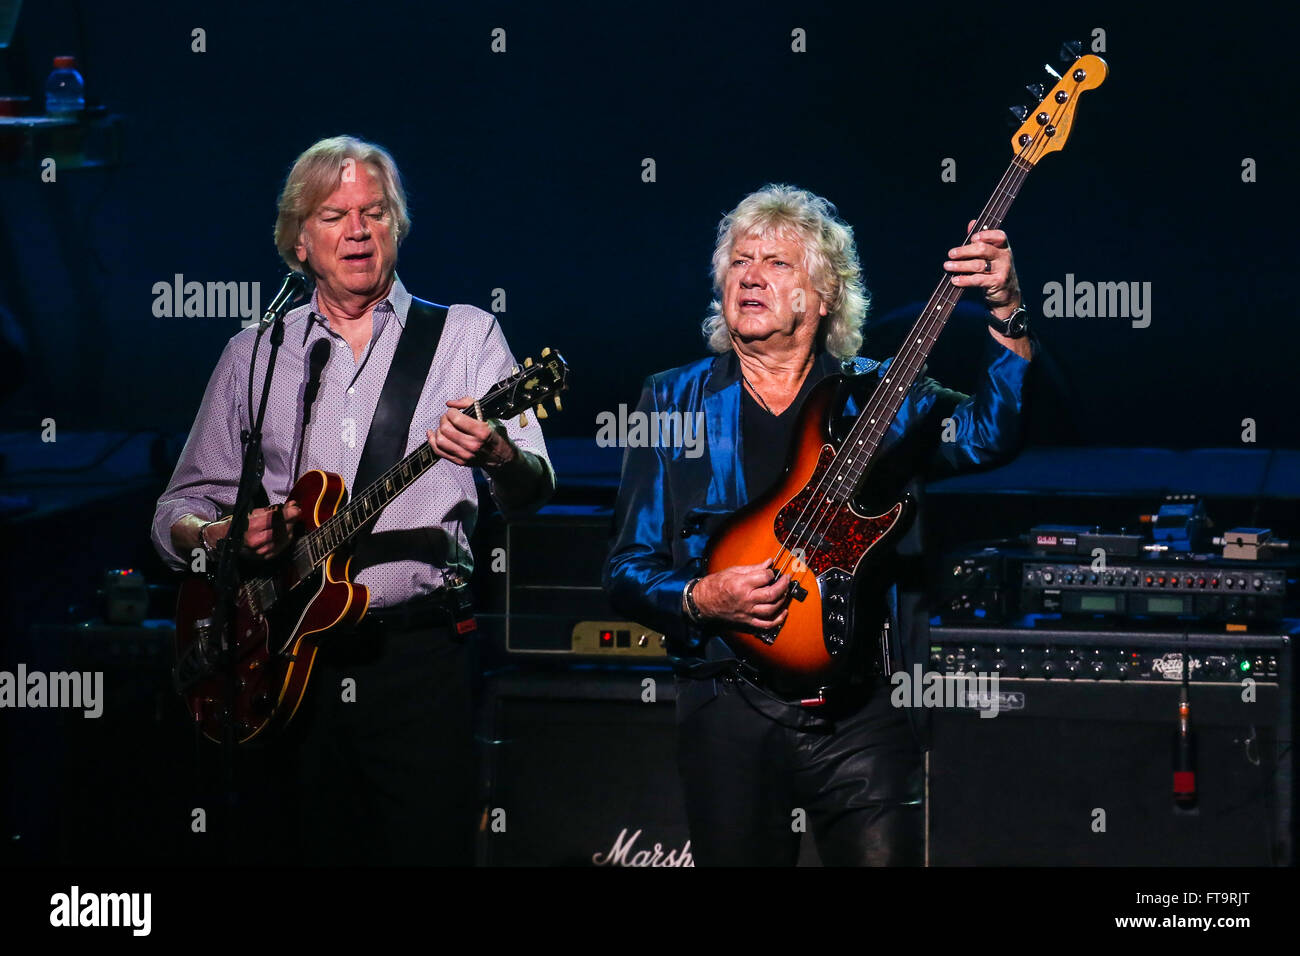 The Moody Blues Band Stock Photos & The Moody Blues Band Stock